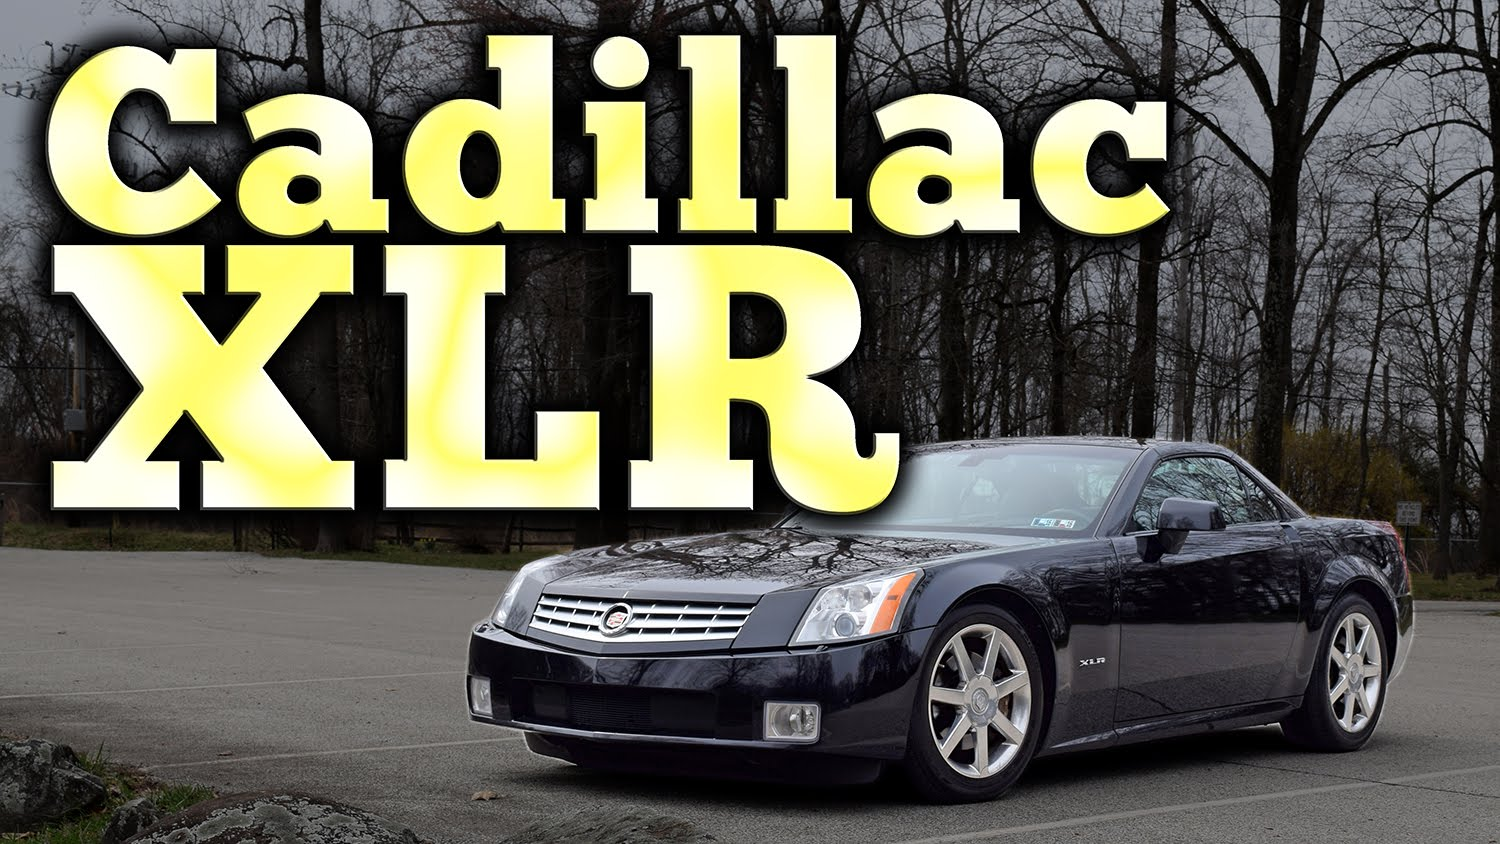 regular car reviews looks at cadillac xlr, explains why it sucks ford fusion trunk regular car reviews looks at cadillac xlr, explains why it sucks